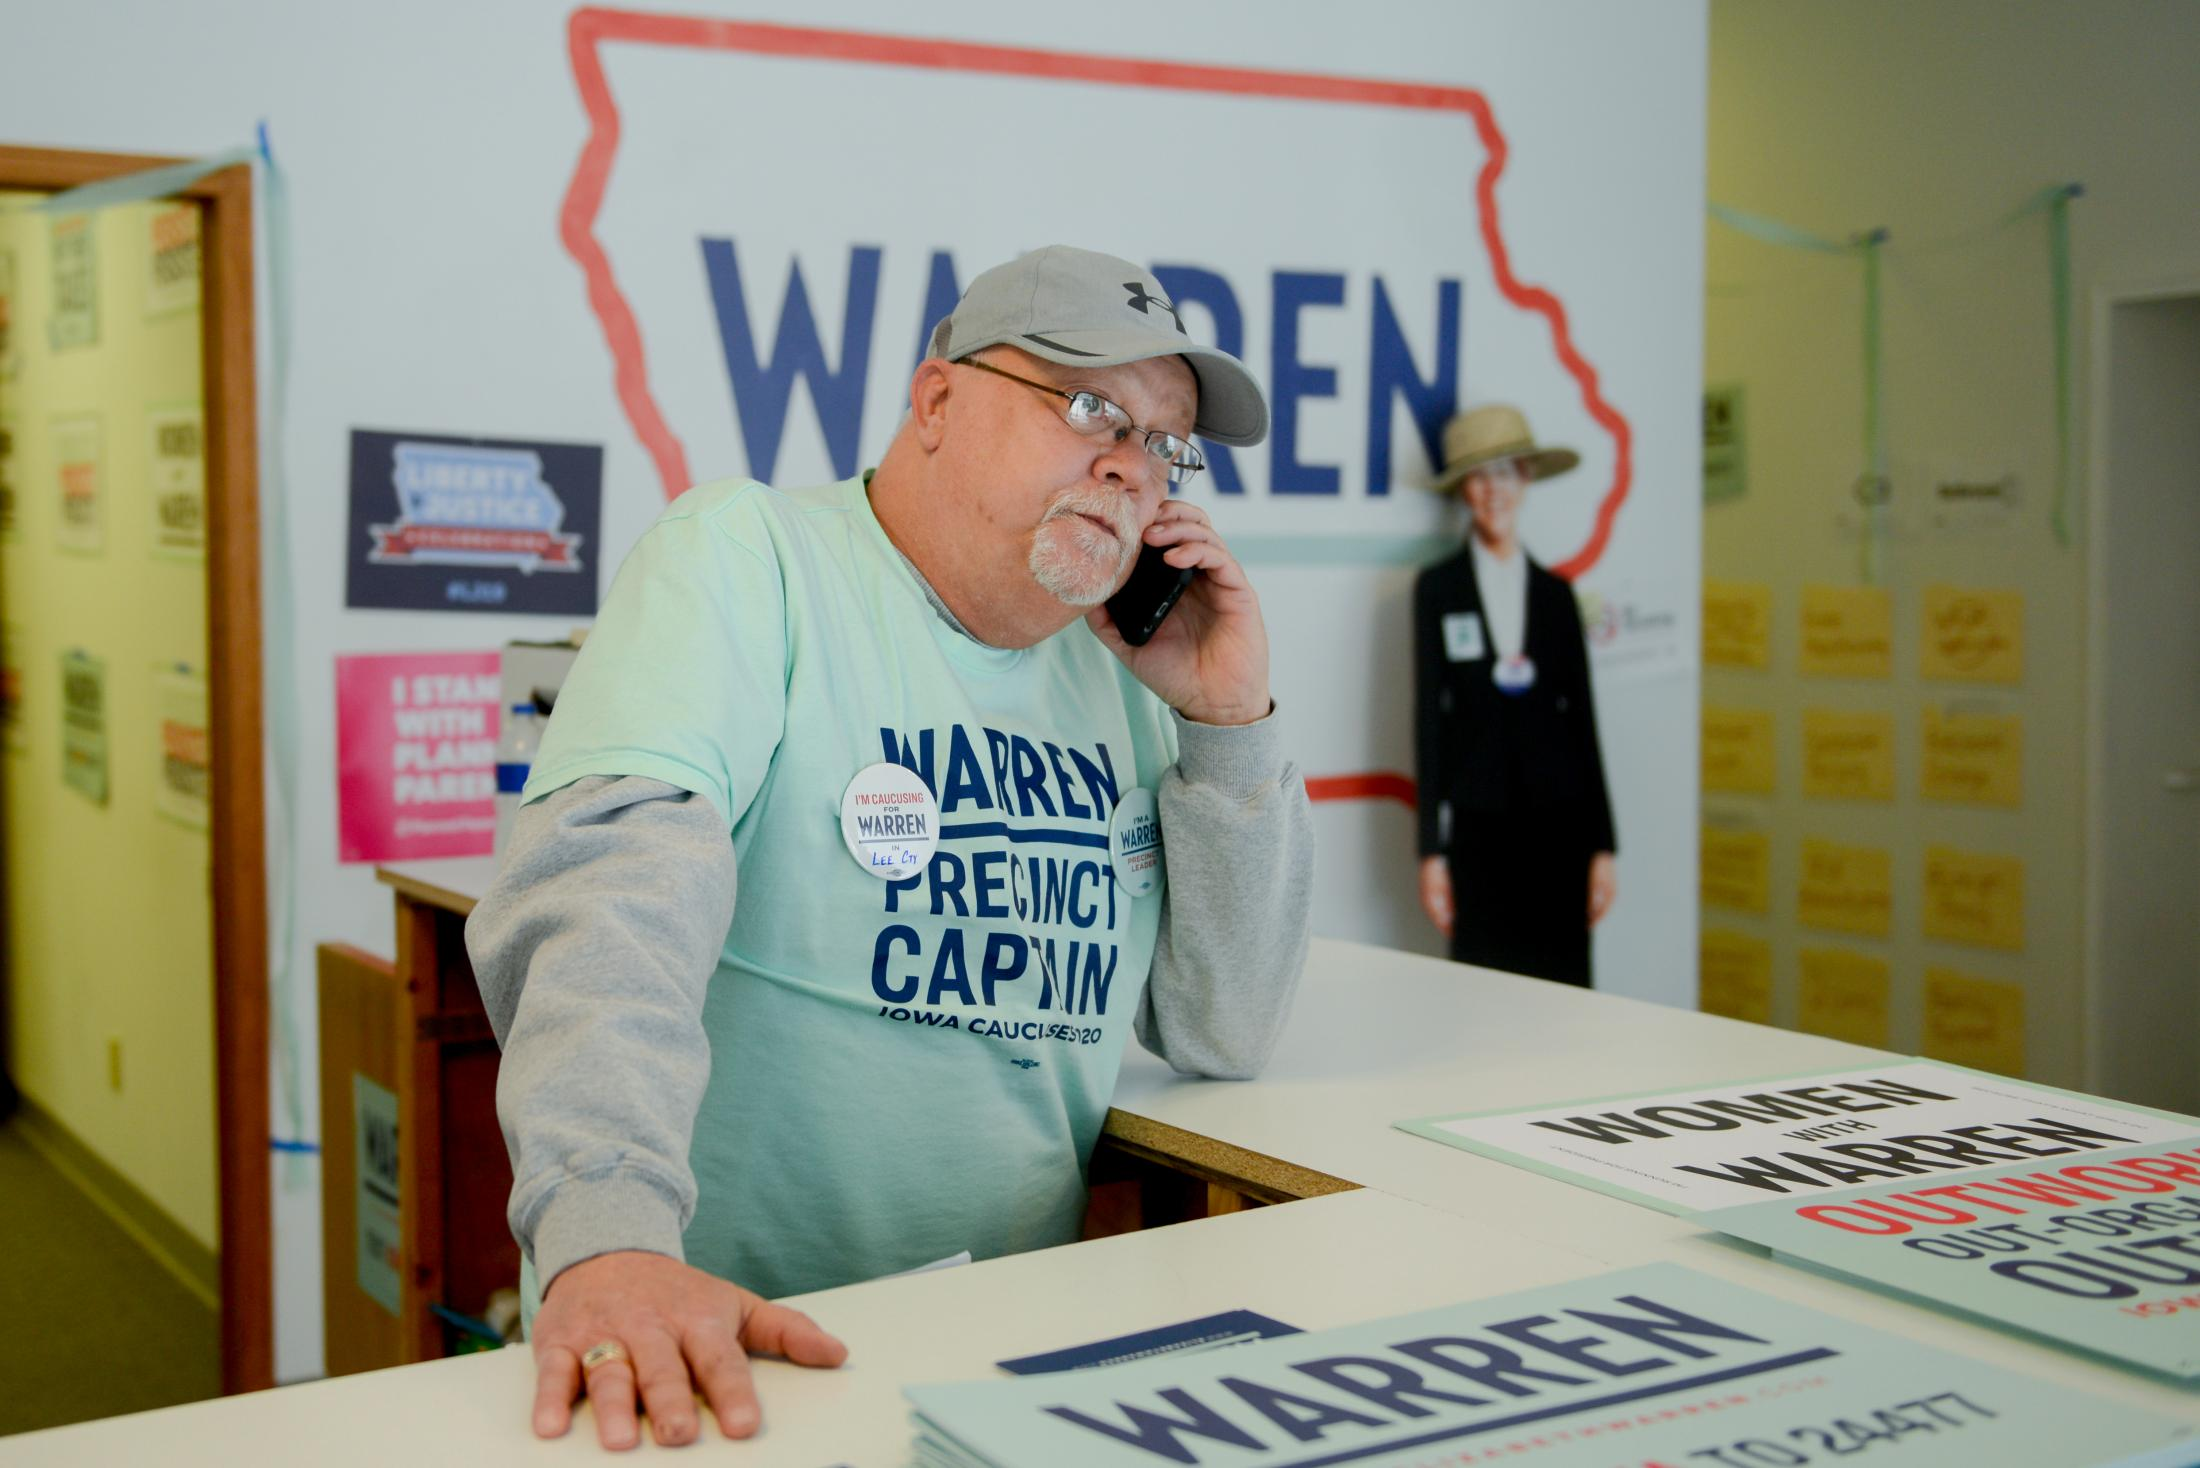 "Joel Amandus of Fort Madison answers his phone at the Elizabeth Warren presidential campaign office on the day of the Iowa caucus Monday, February 3, 2020, in Fort Madison, Iowa. ""I think it's time for a woman to run the country,"" Amandus said about why he was campaigning for Warren."